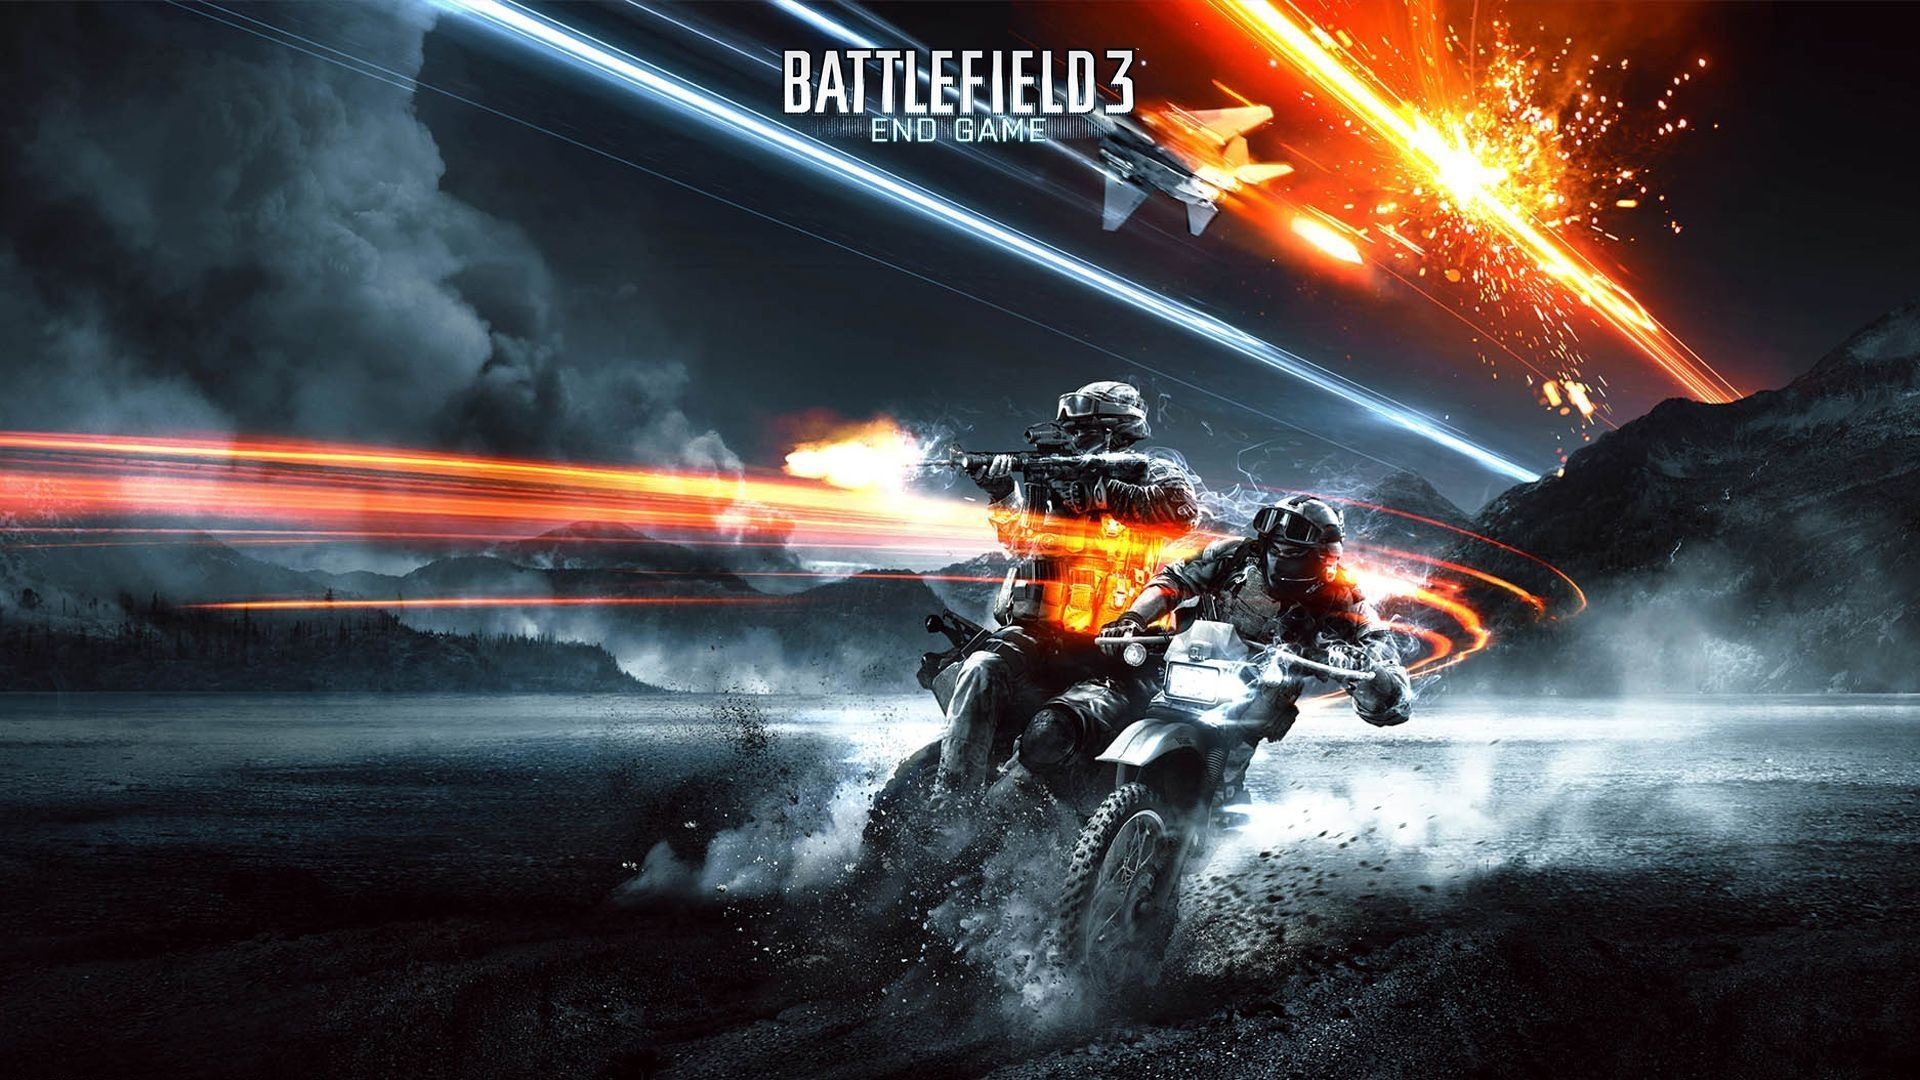 Battlefield 3 End Game Wallpapers